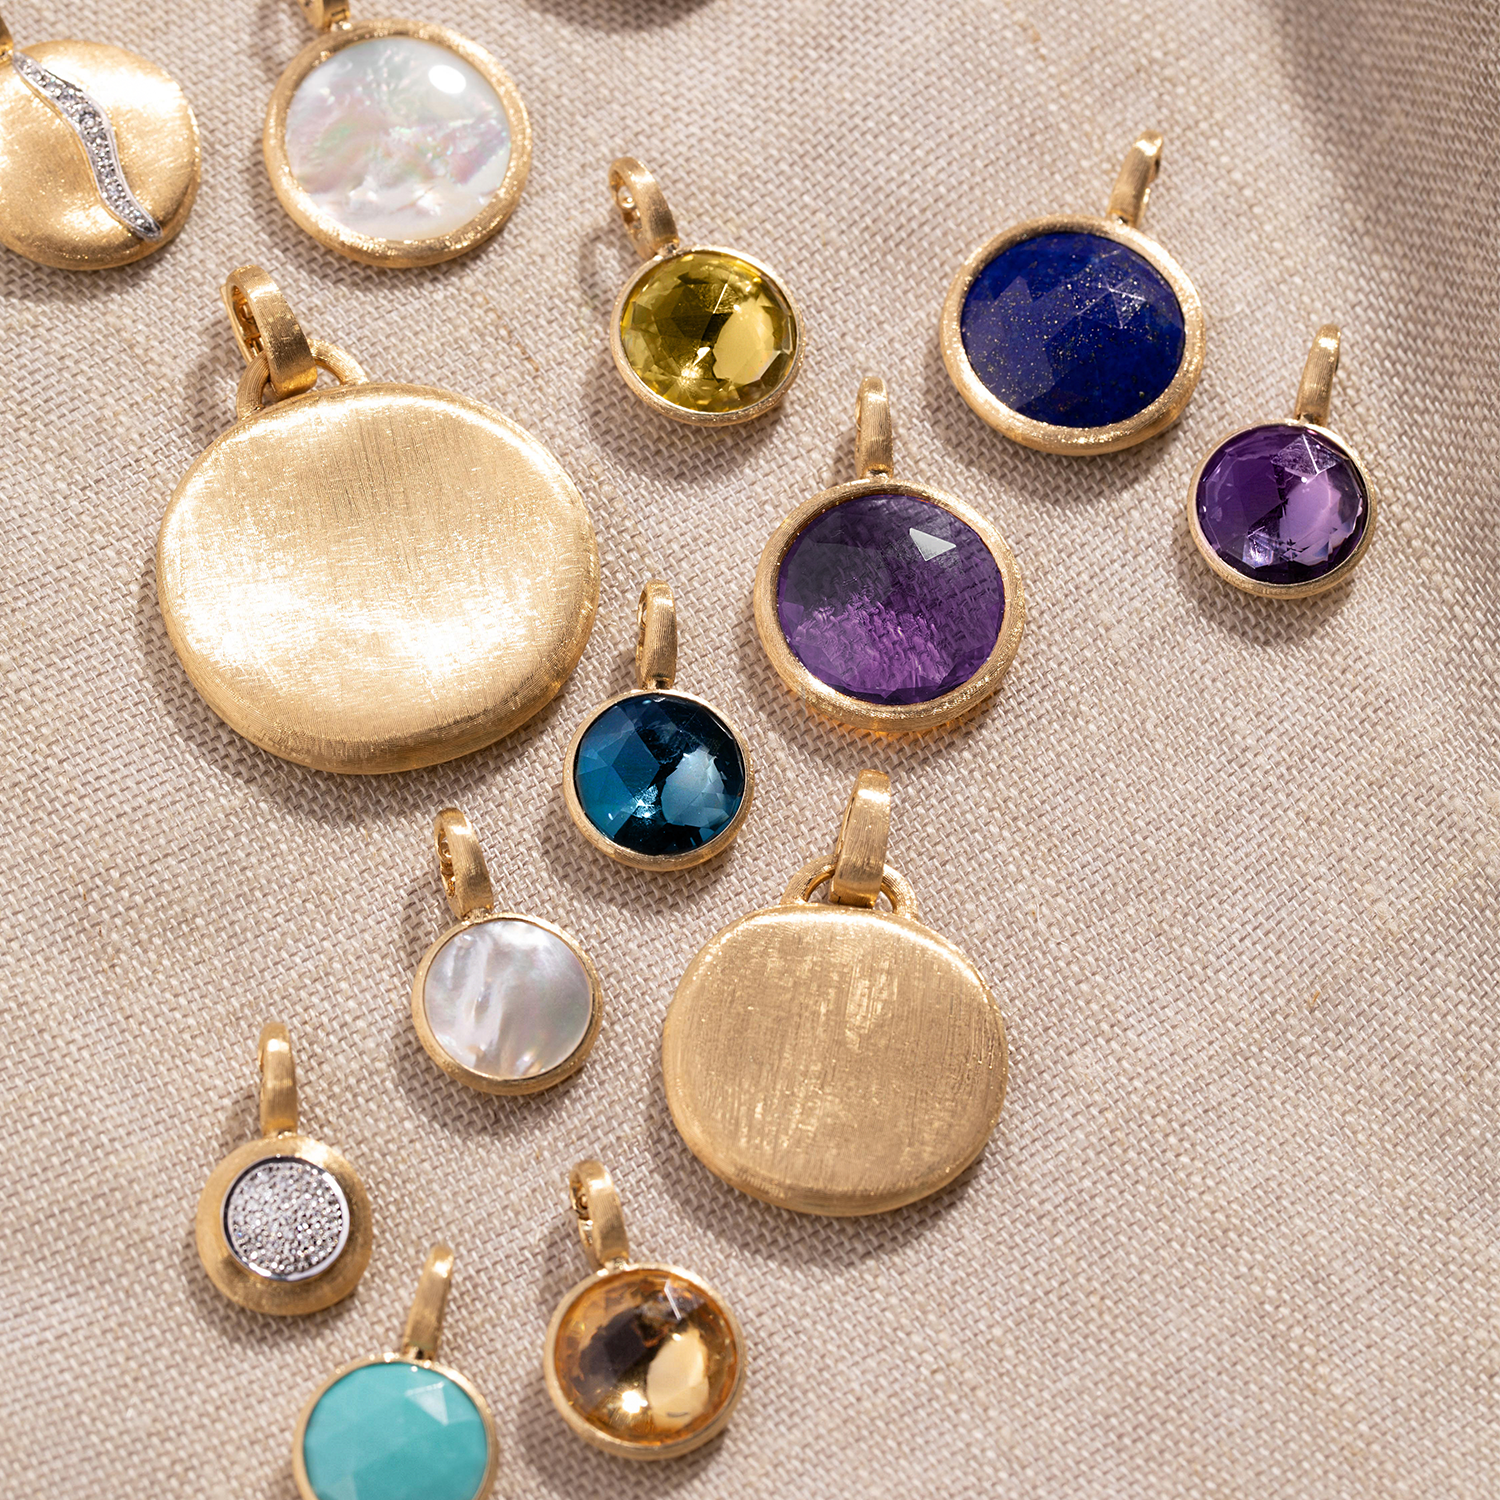 Products in the Pendants collection